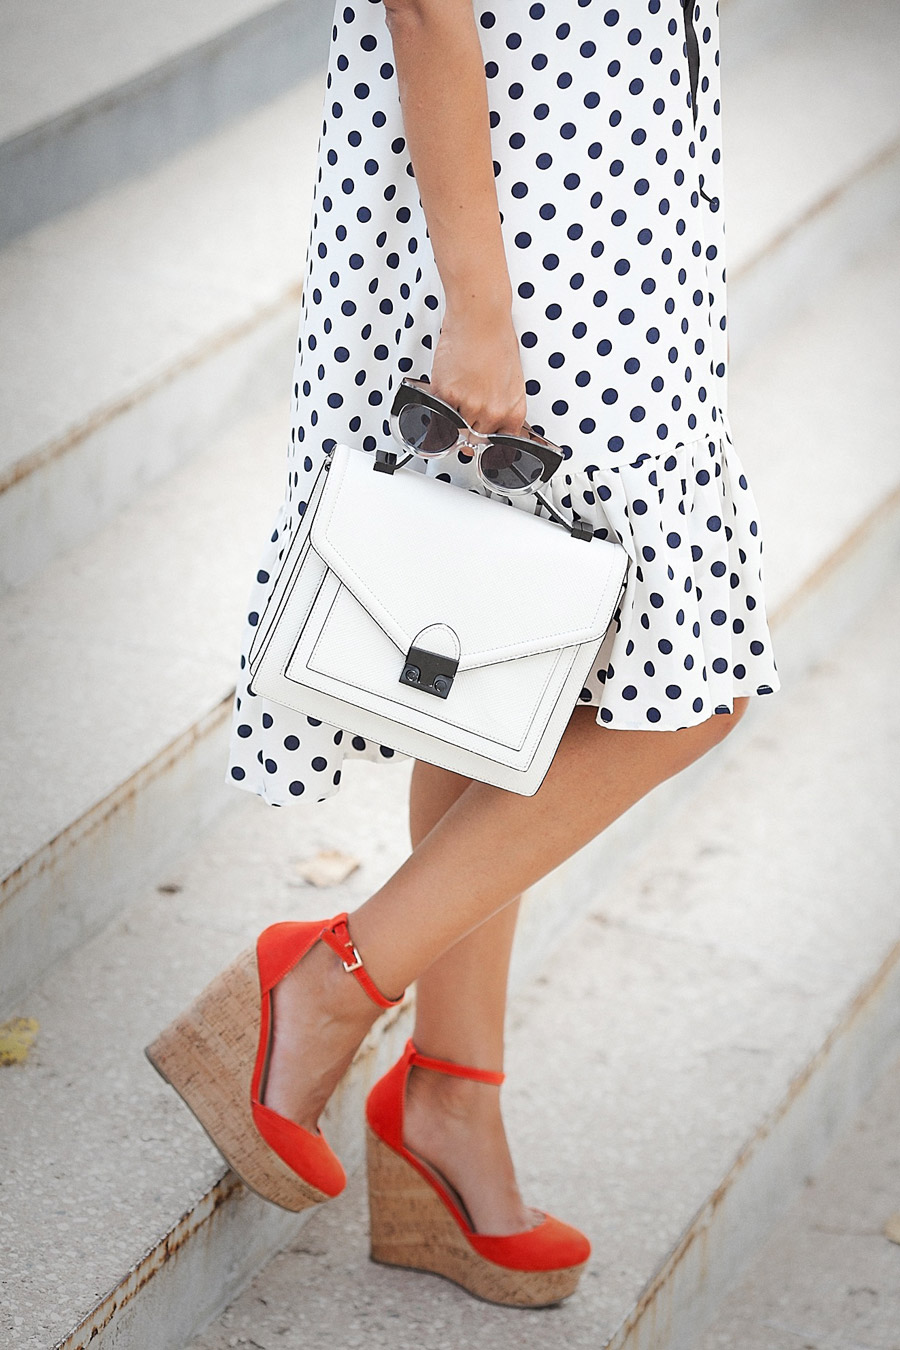 loeffler randall bag, red wedges, polka dot dress,